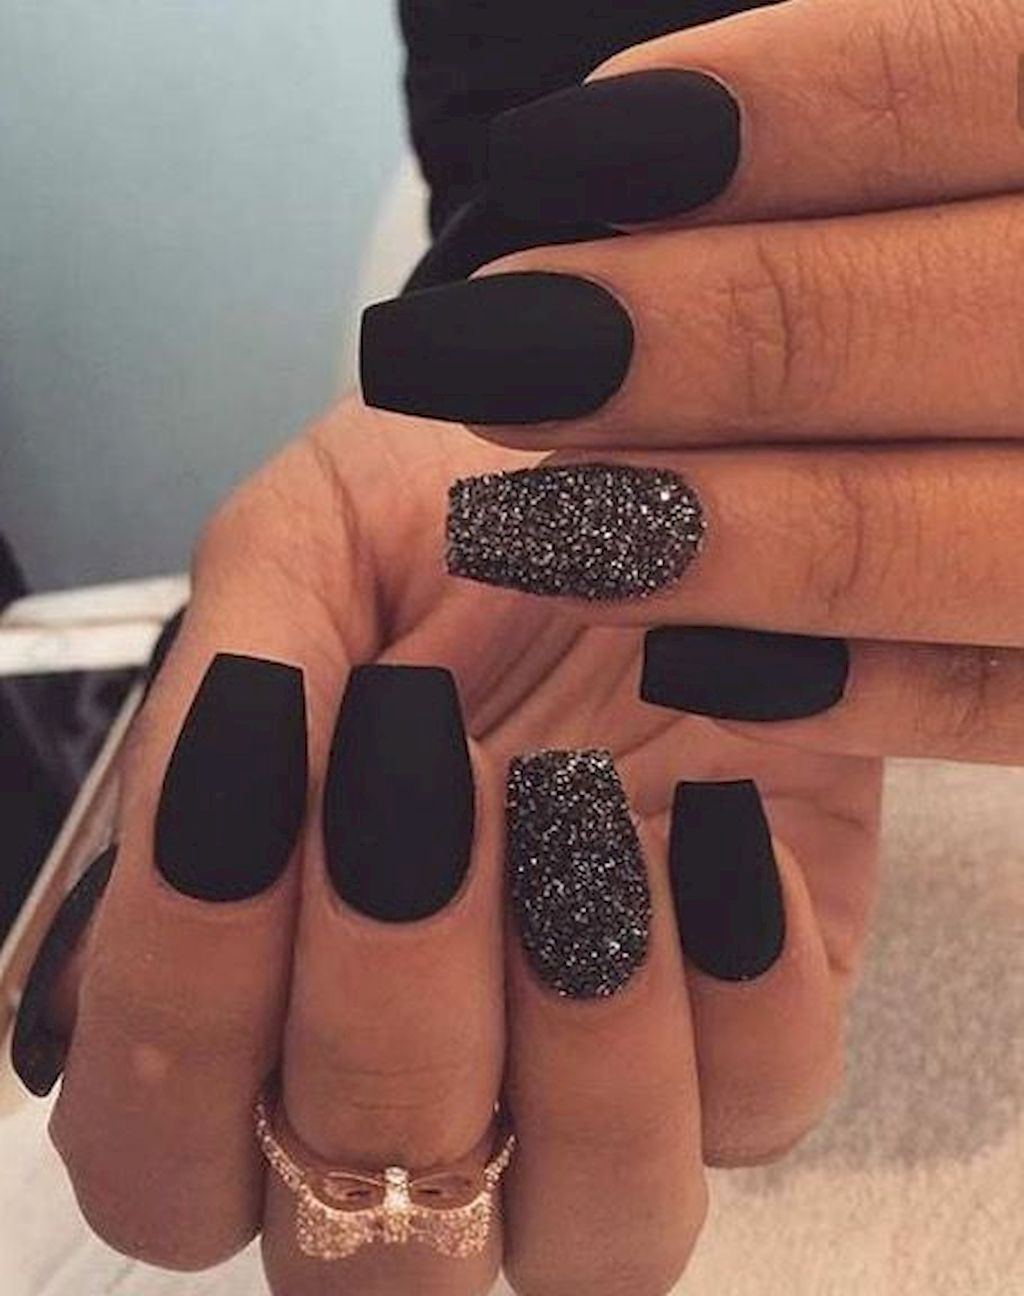 67 New Acrylic Nail Designs Ideas To Try This Year Fall Acrylic Nails Matte Nails Design Coffin Nails Designs